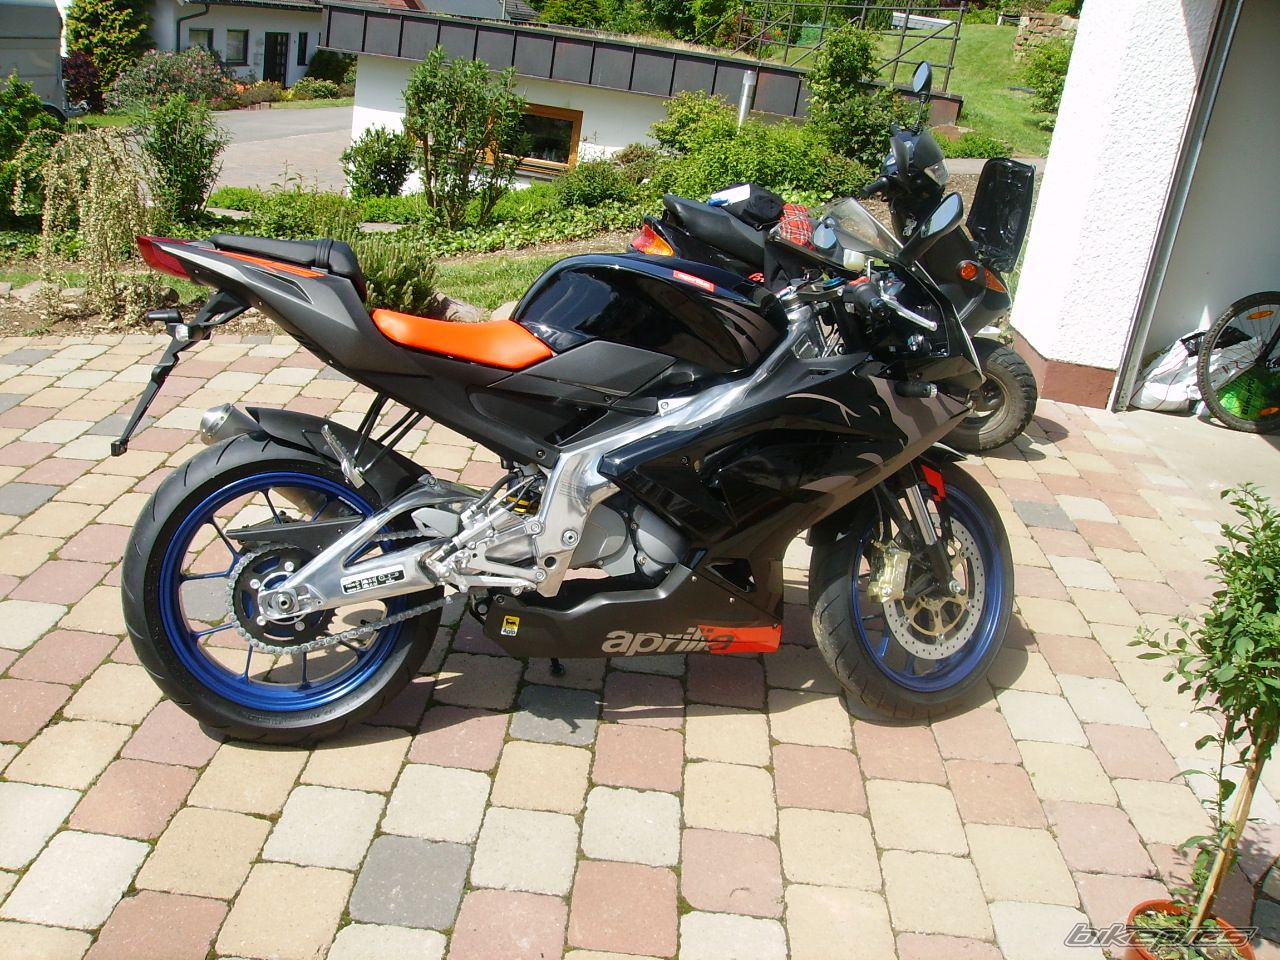 2006 APRILIA RS 125 | Picture 902383 motorcycle photo